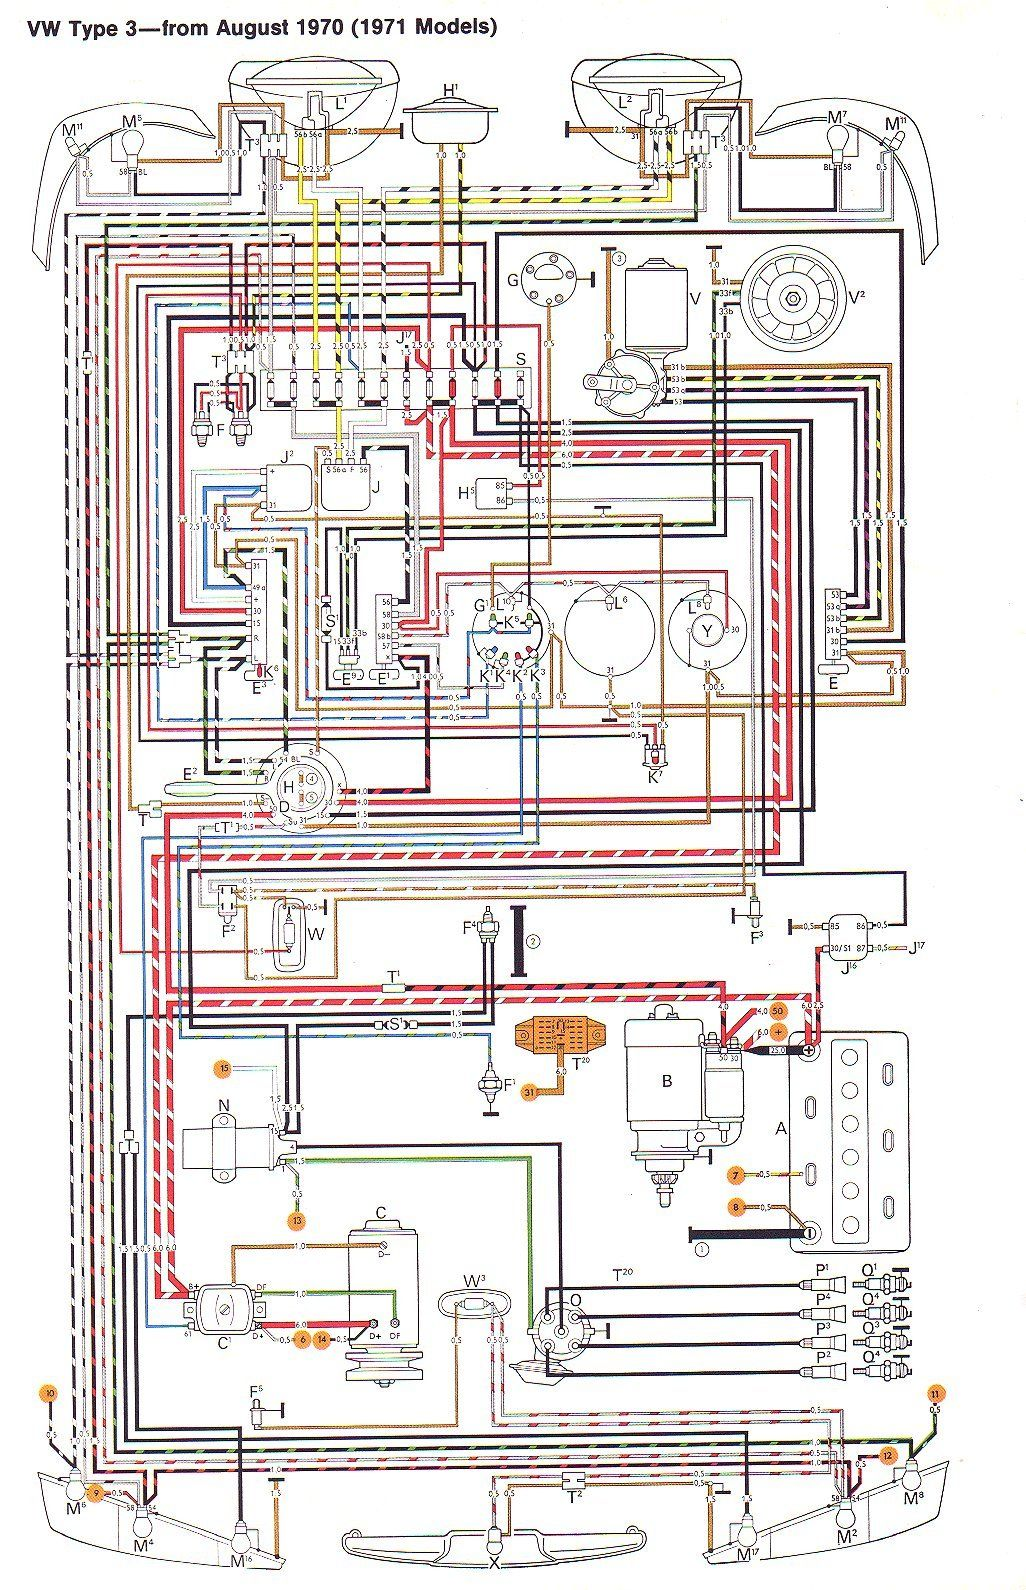 e0db58370f79a63d02d45f00cf63f44a 71 vw t3 wiring diagram ruthie pinterest volkswagen, engine vw engine wiring diagram at gsmx.co